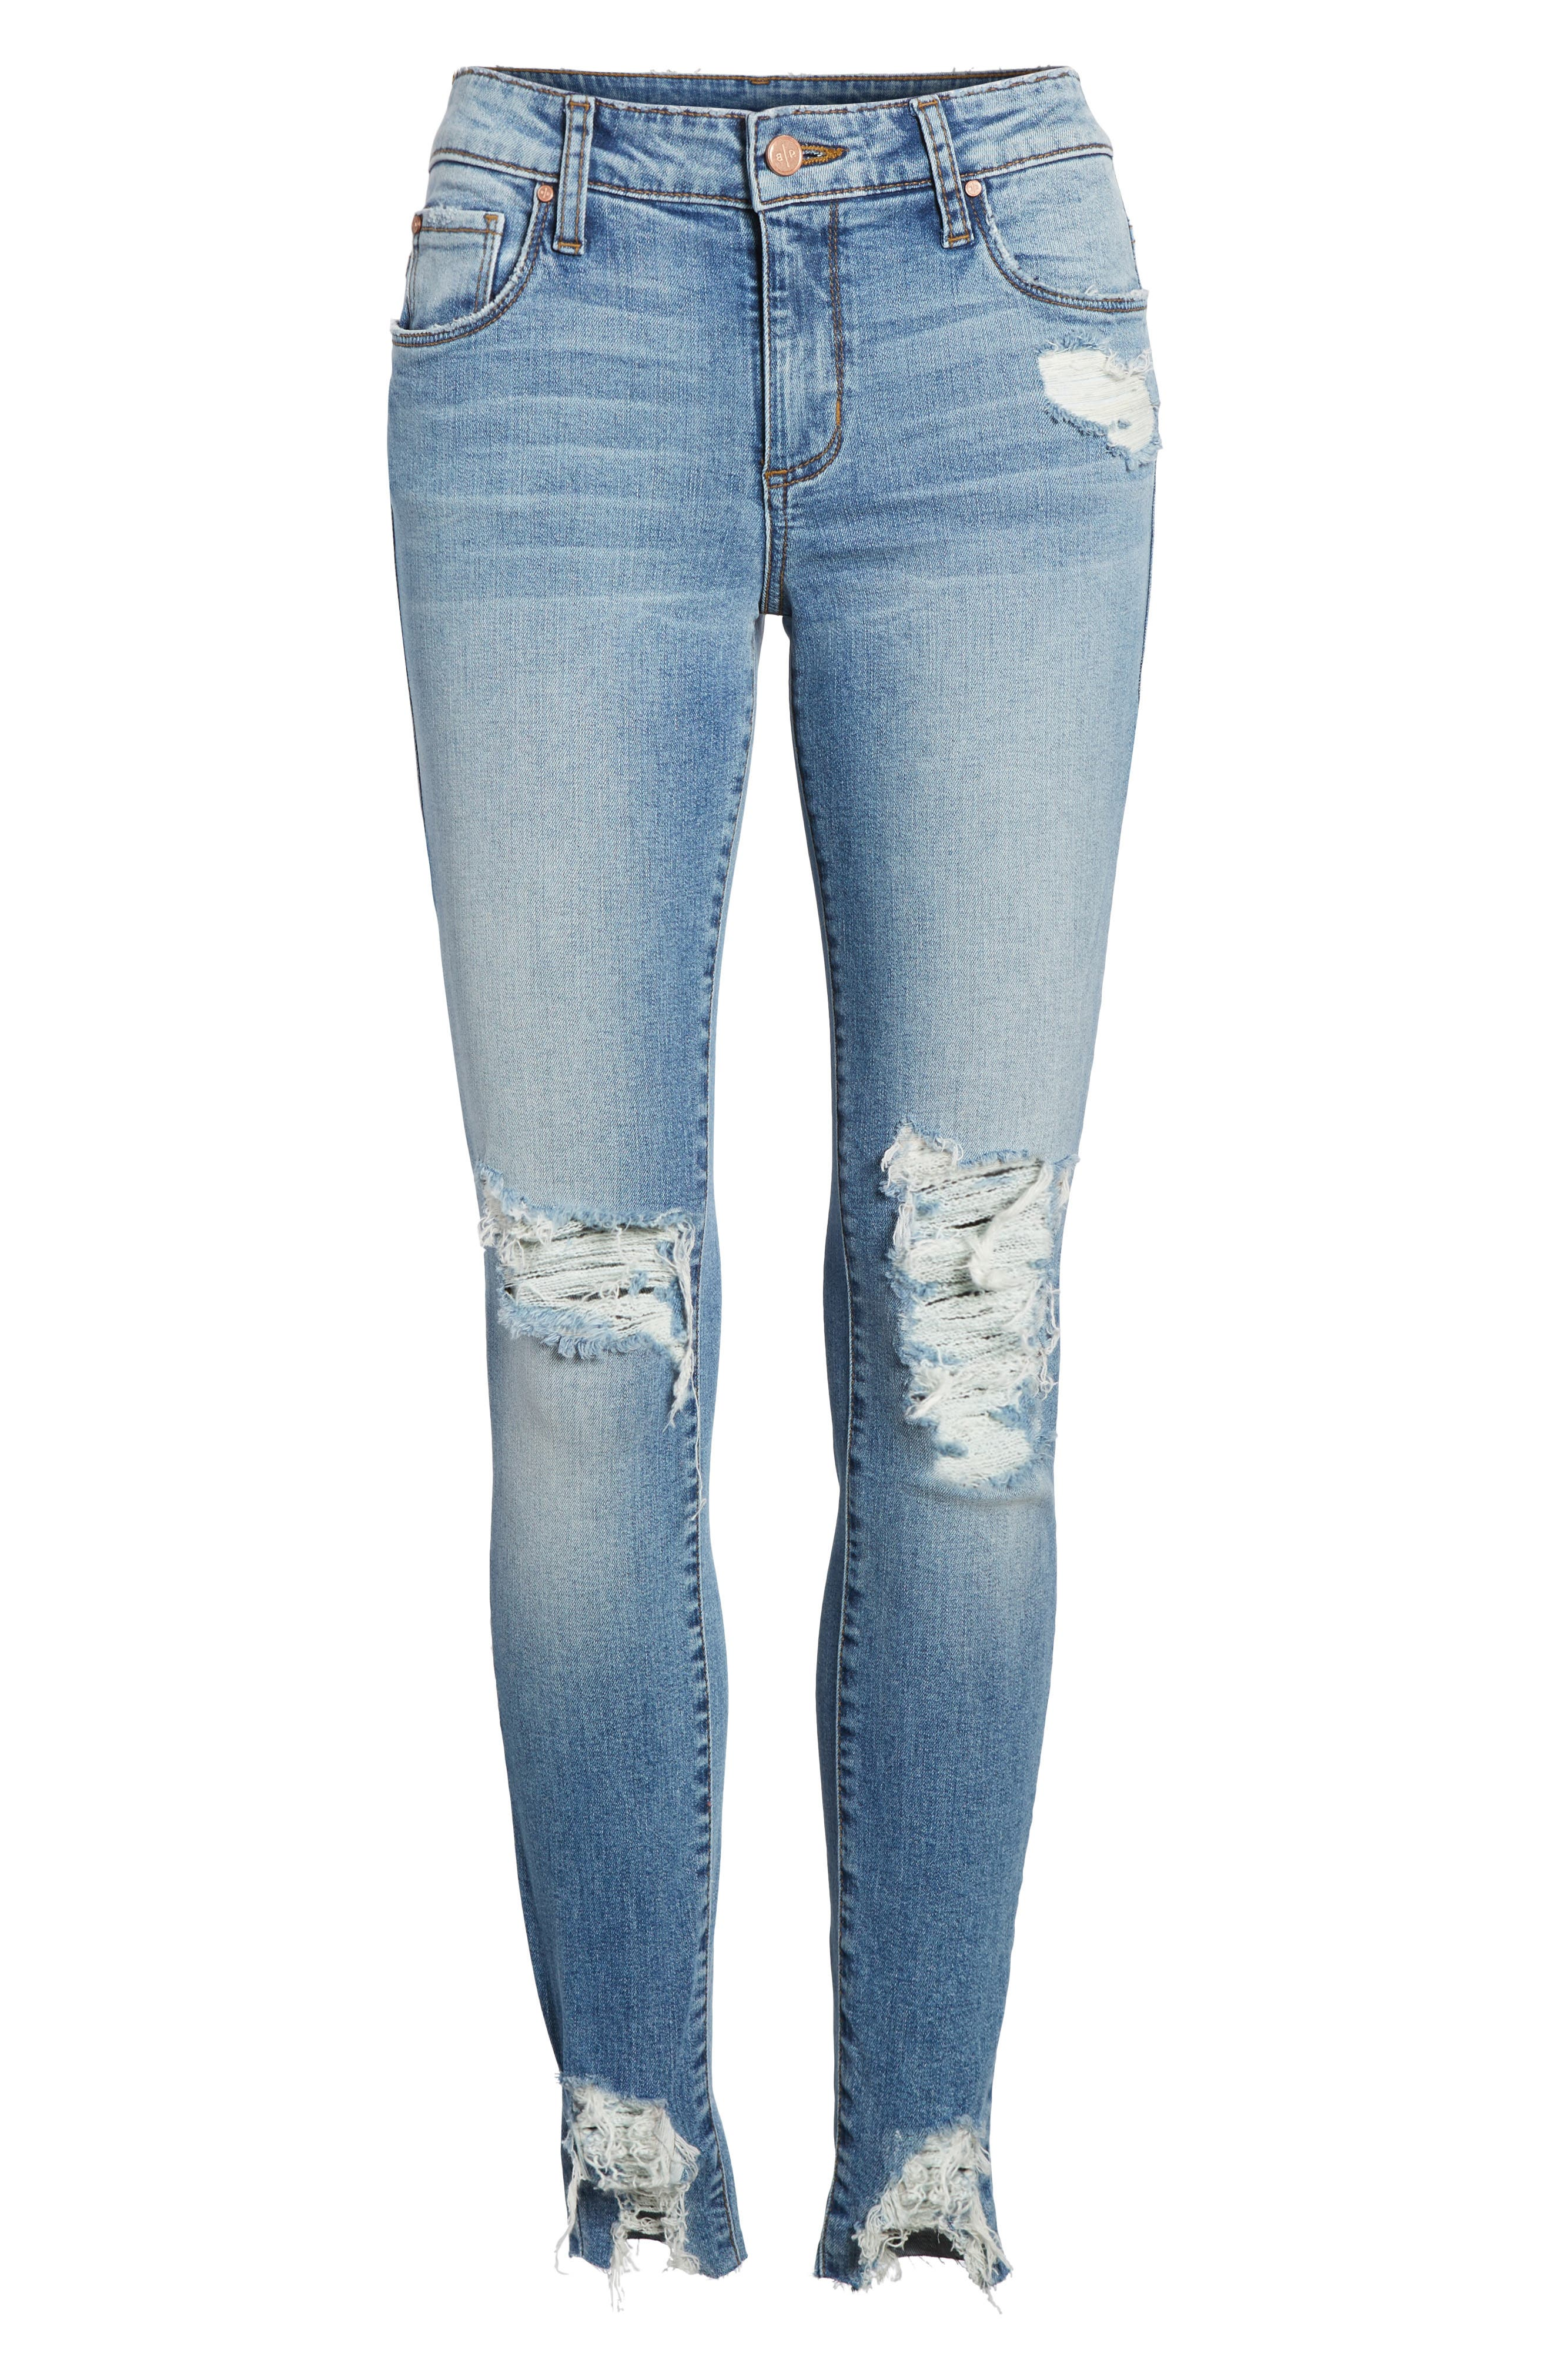 Ripped Skinny Jeans,                             Alternate thumbnail 7, color,                             420